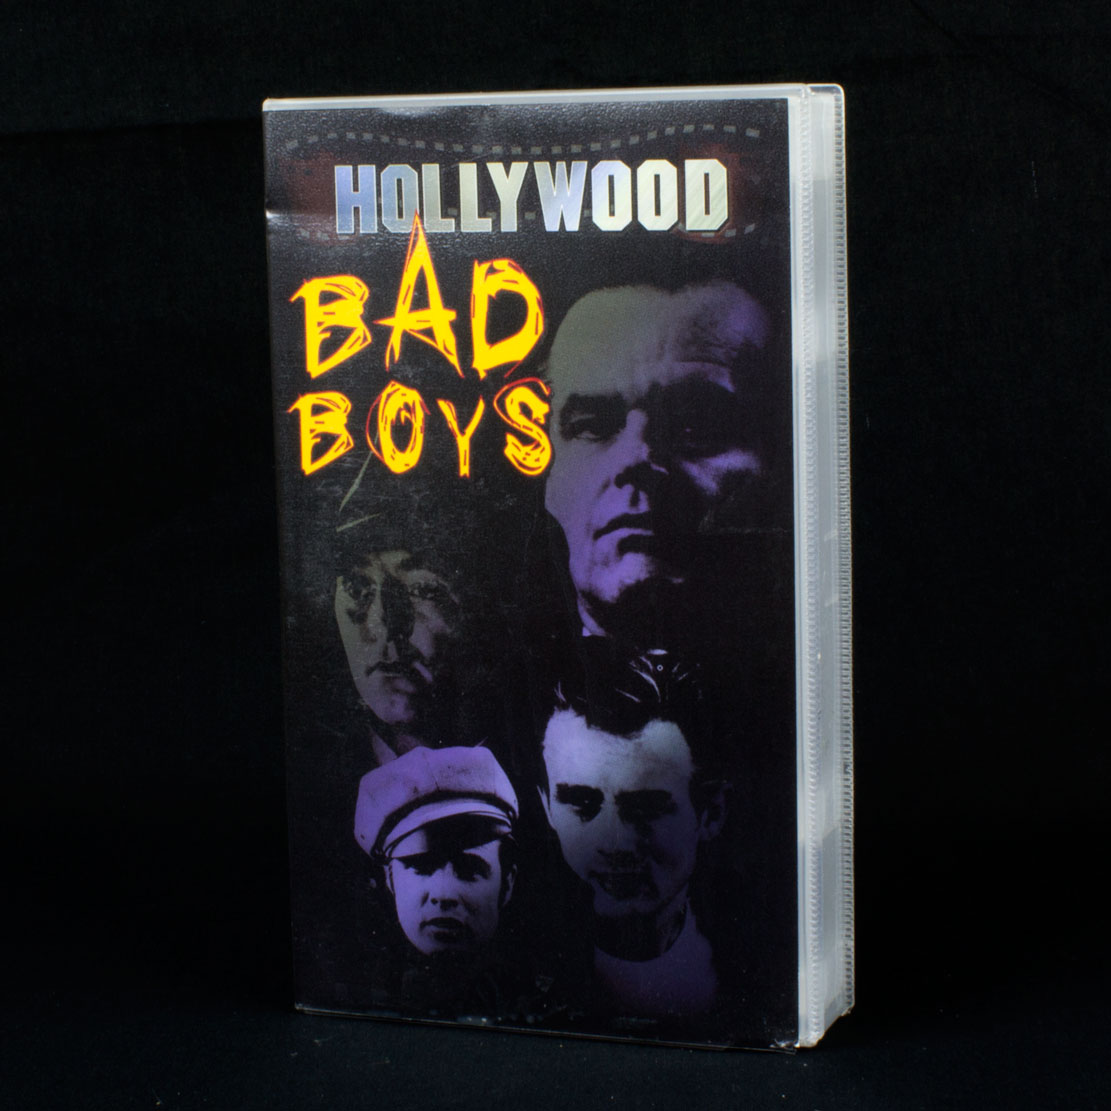 Bad Boys With Sean Penn: Marlon Brando, Sean Penn, Jack